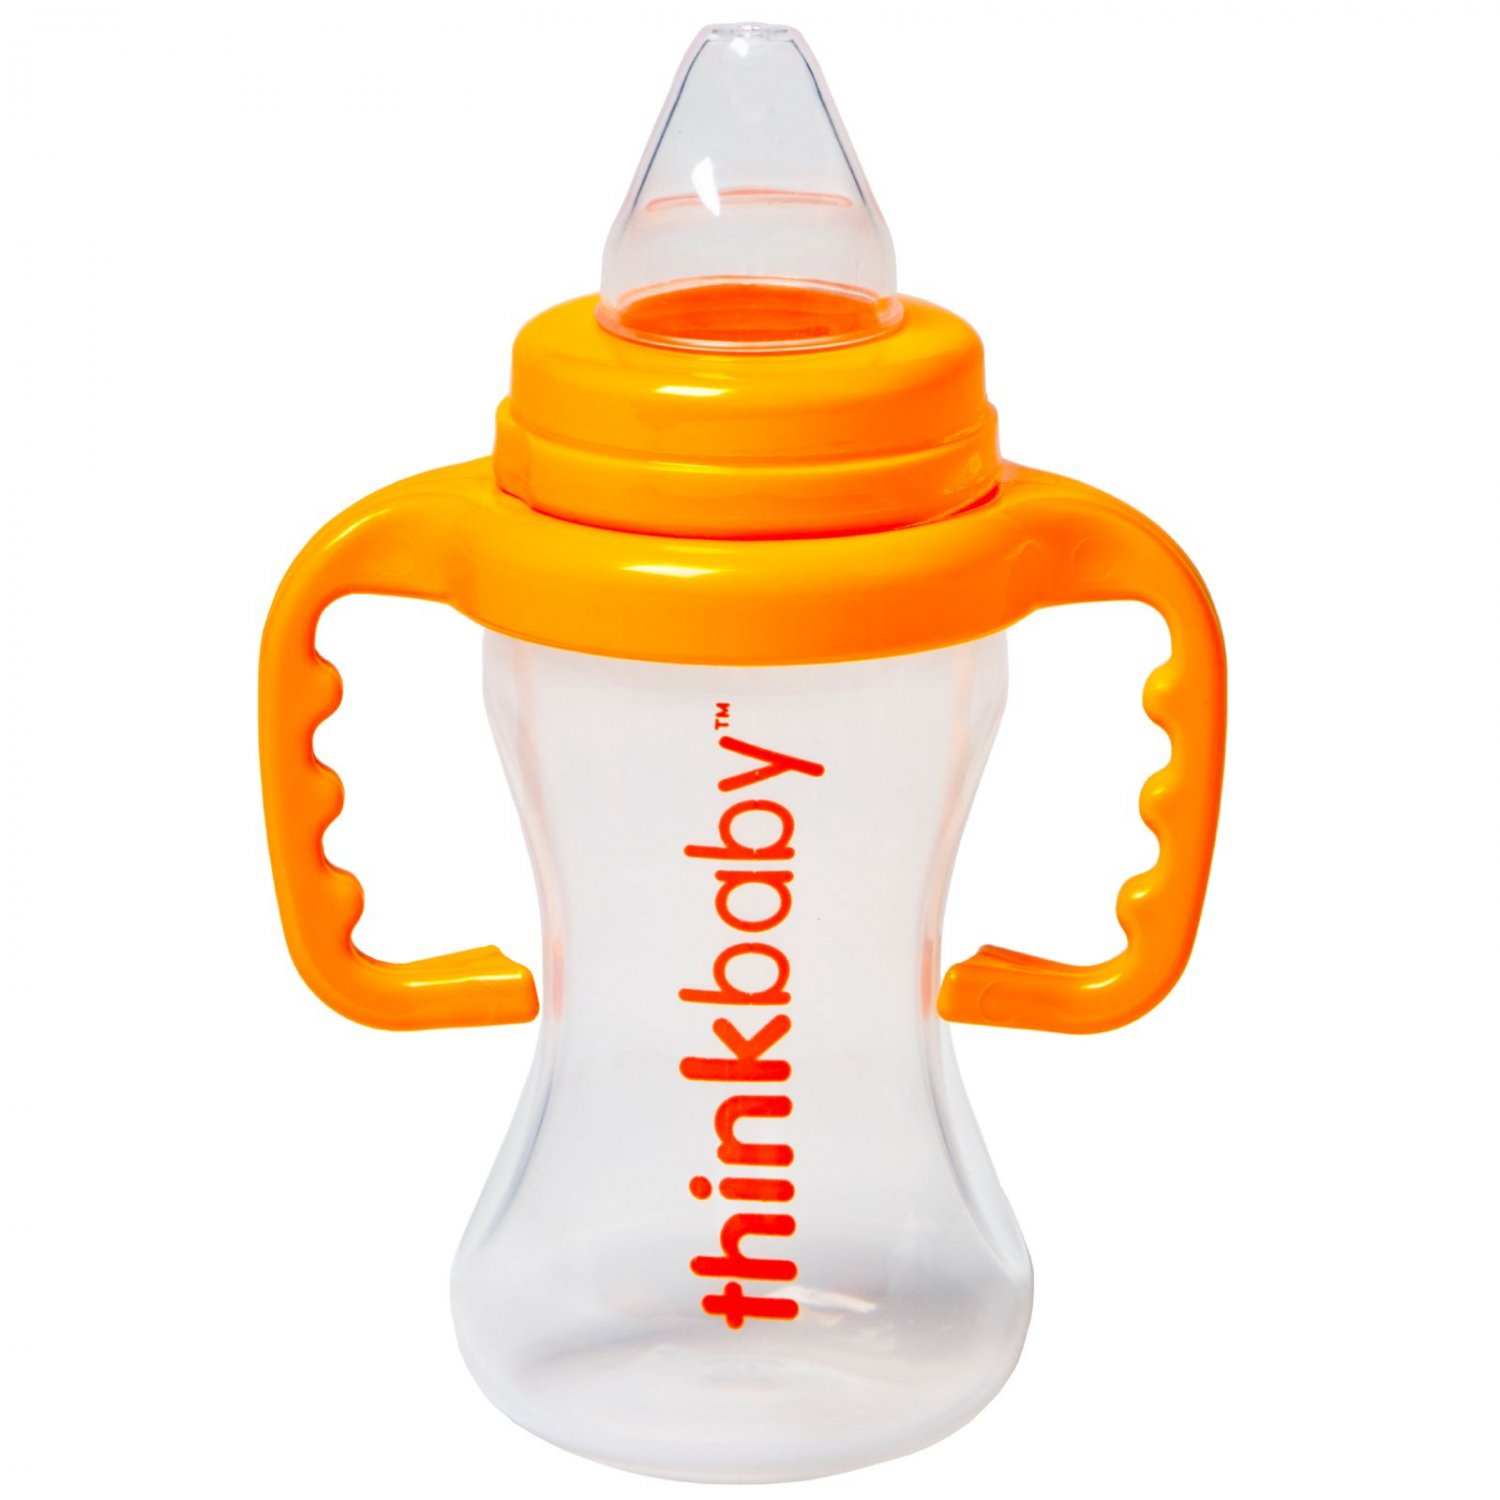 Thinkbaby No Spill Sippy Cup - 9 oz